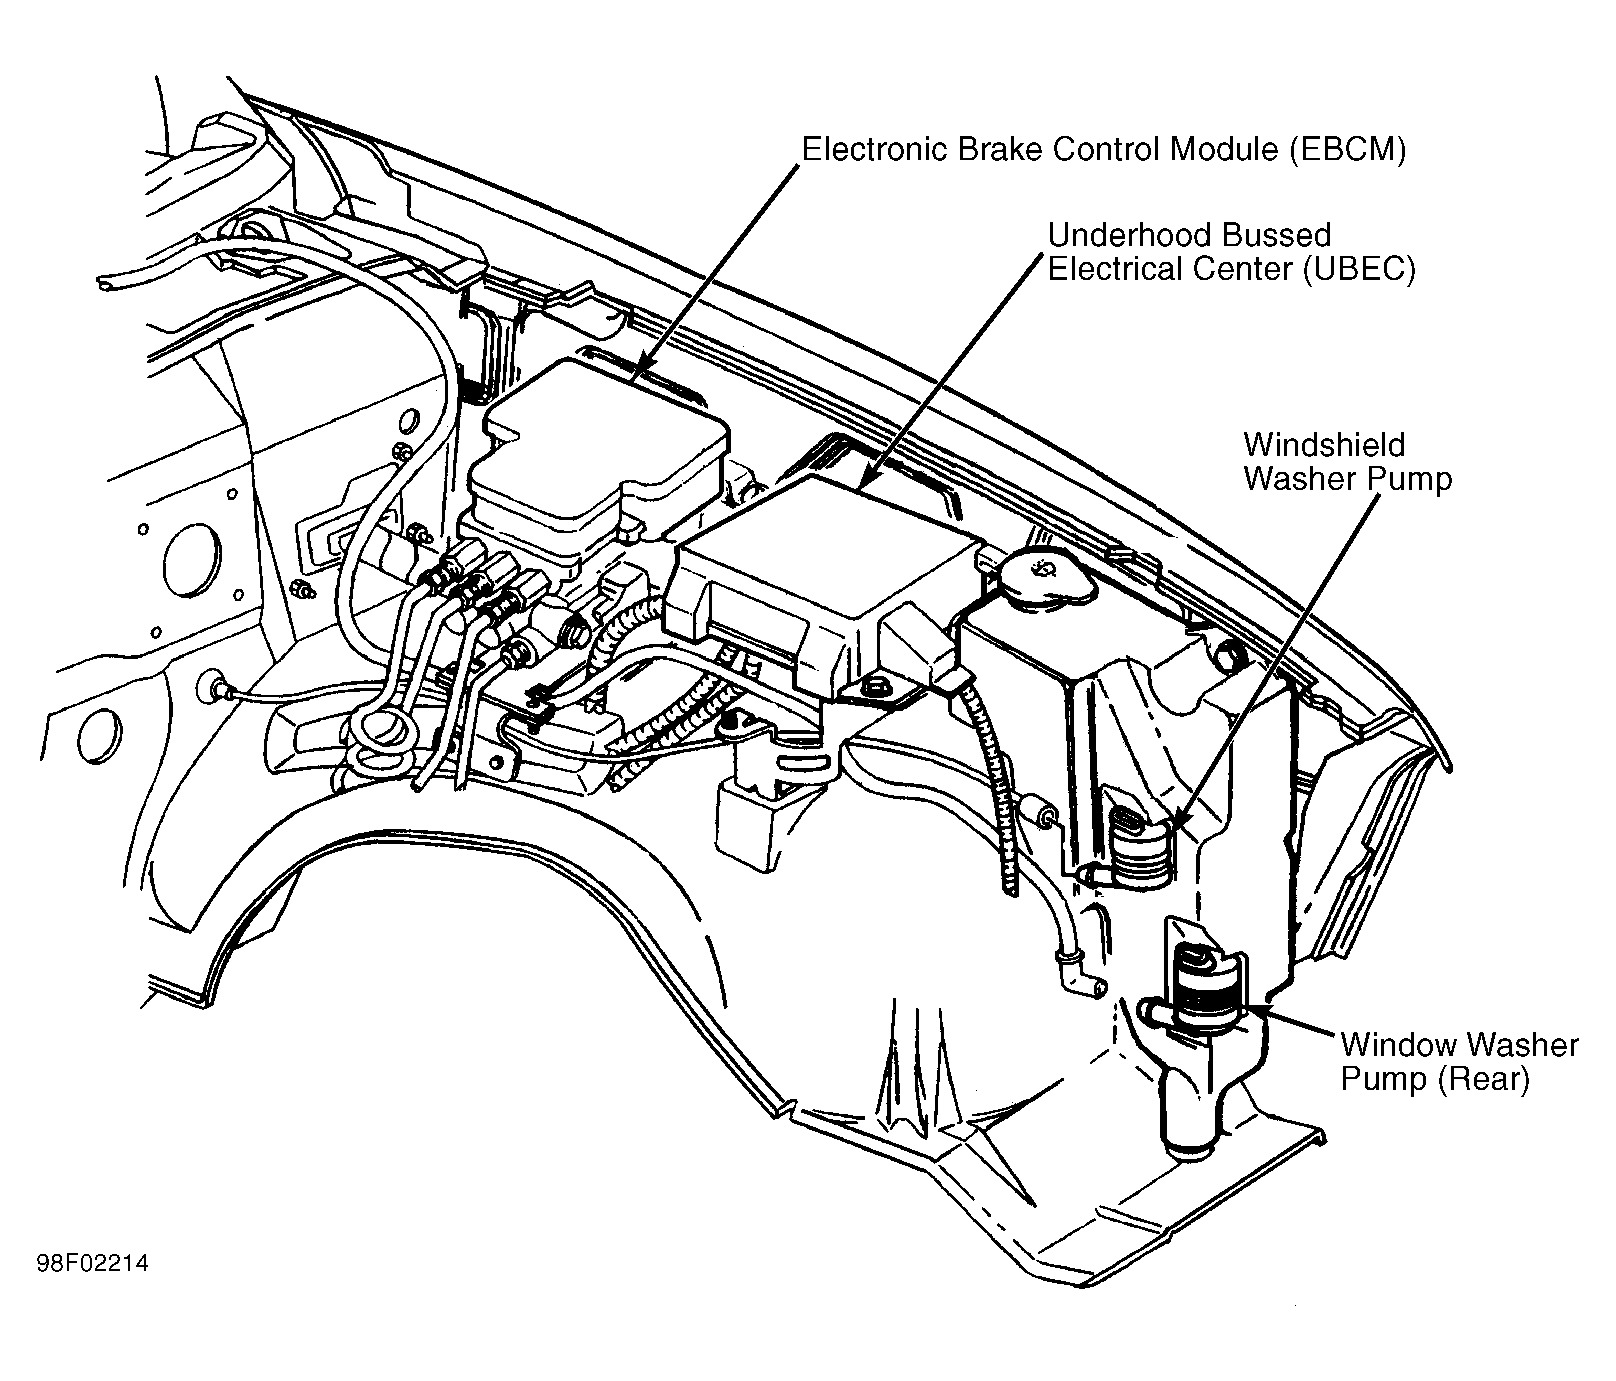 1994 Gmc Jimmy Wiring Diagram Opinions About 1995 2500 Images Gallery